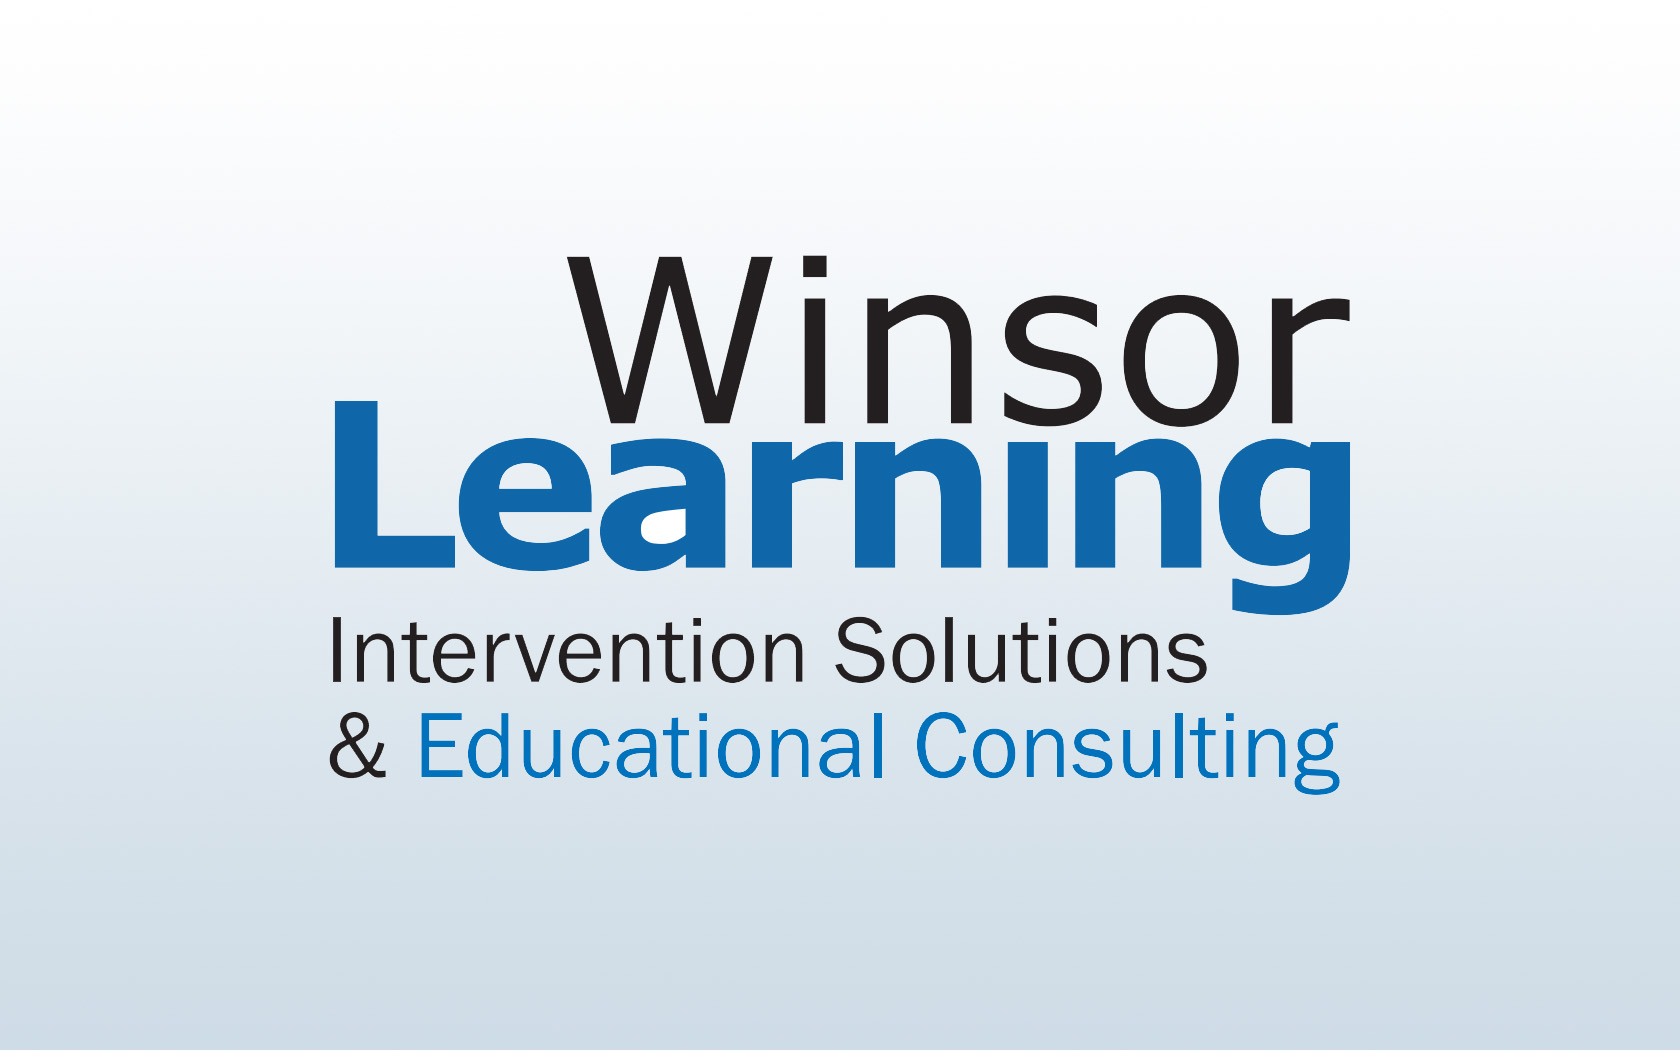 Winsor learning company